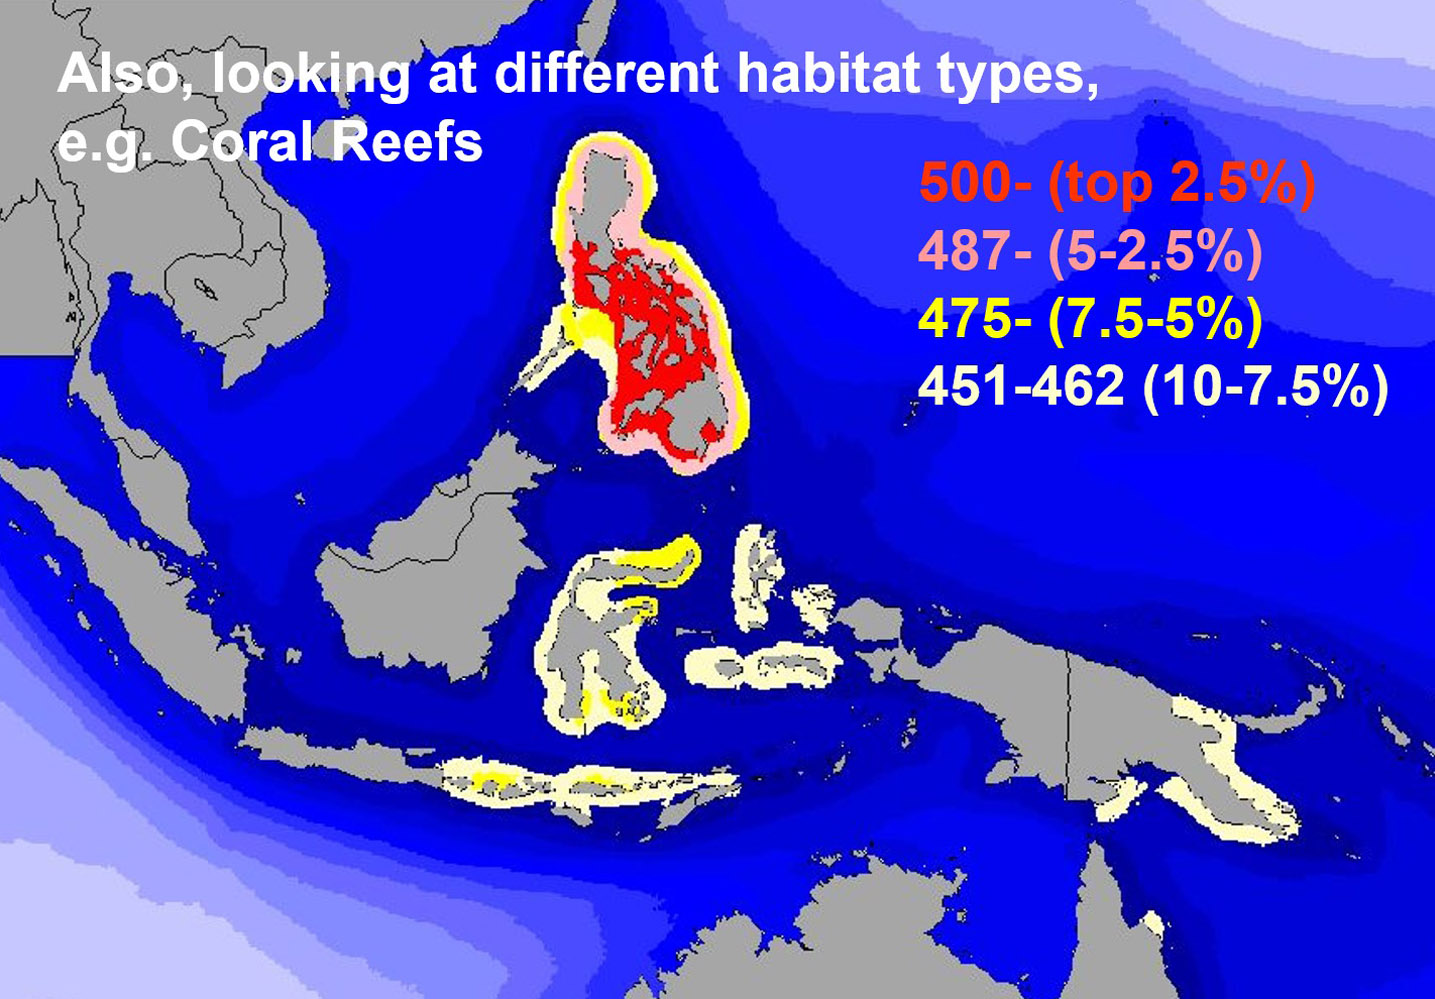 Image 4 of Dr. Kent Carpenter and Dr. Victor Springer's 2005 scientific research paper after overlaying nearly 2,983 species distribution Indo-Pacific maps that concluded the Philippines as the center of marine species richness in the Coral Triangle.